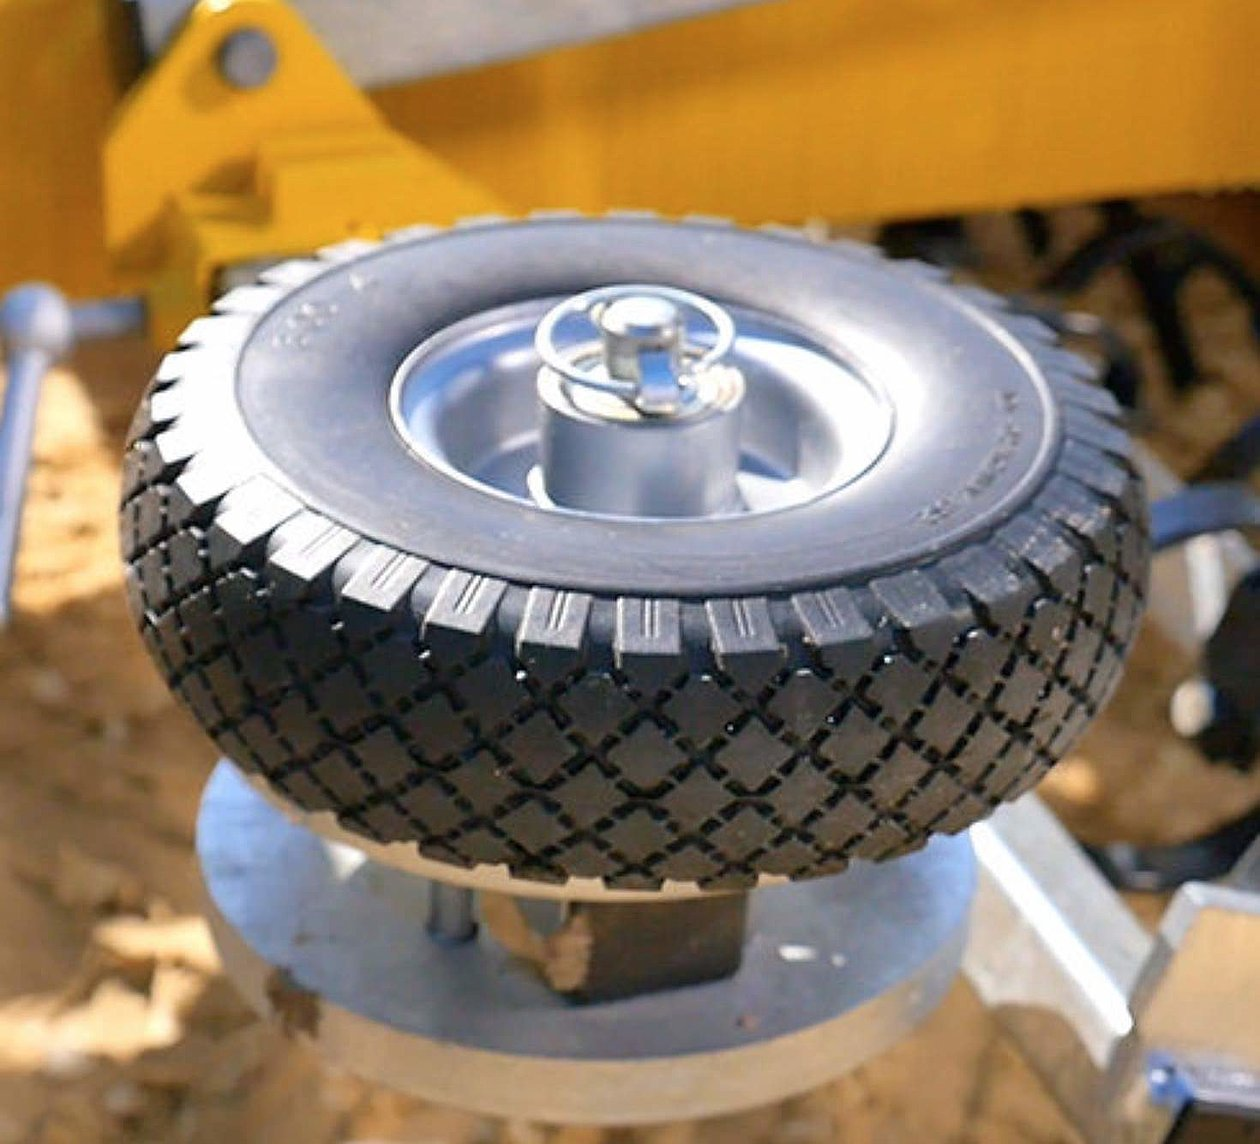 Barrier wheels on both sides